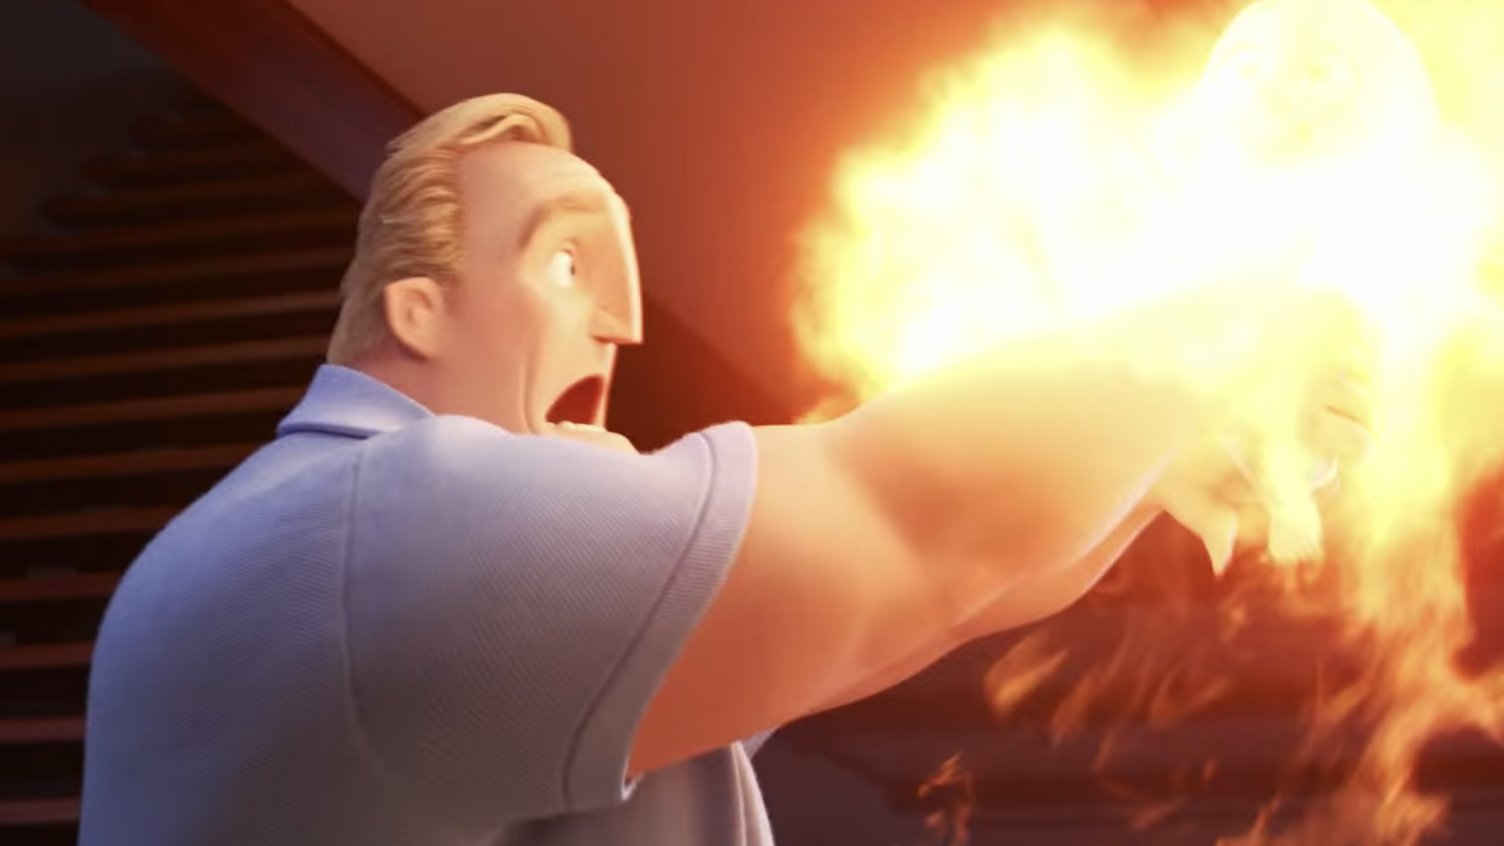 Hell yeah! Here's the teaser trailer for 'The Incredibles 2' https://t.co/g9vqf7gJqU https://t.co/pcXNBSYShh